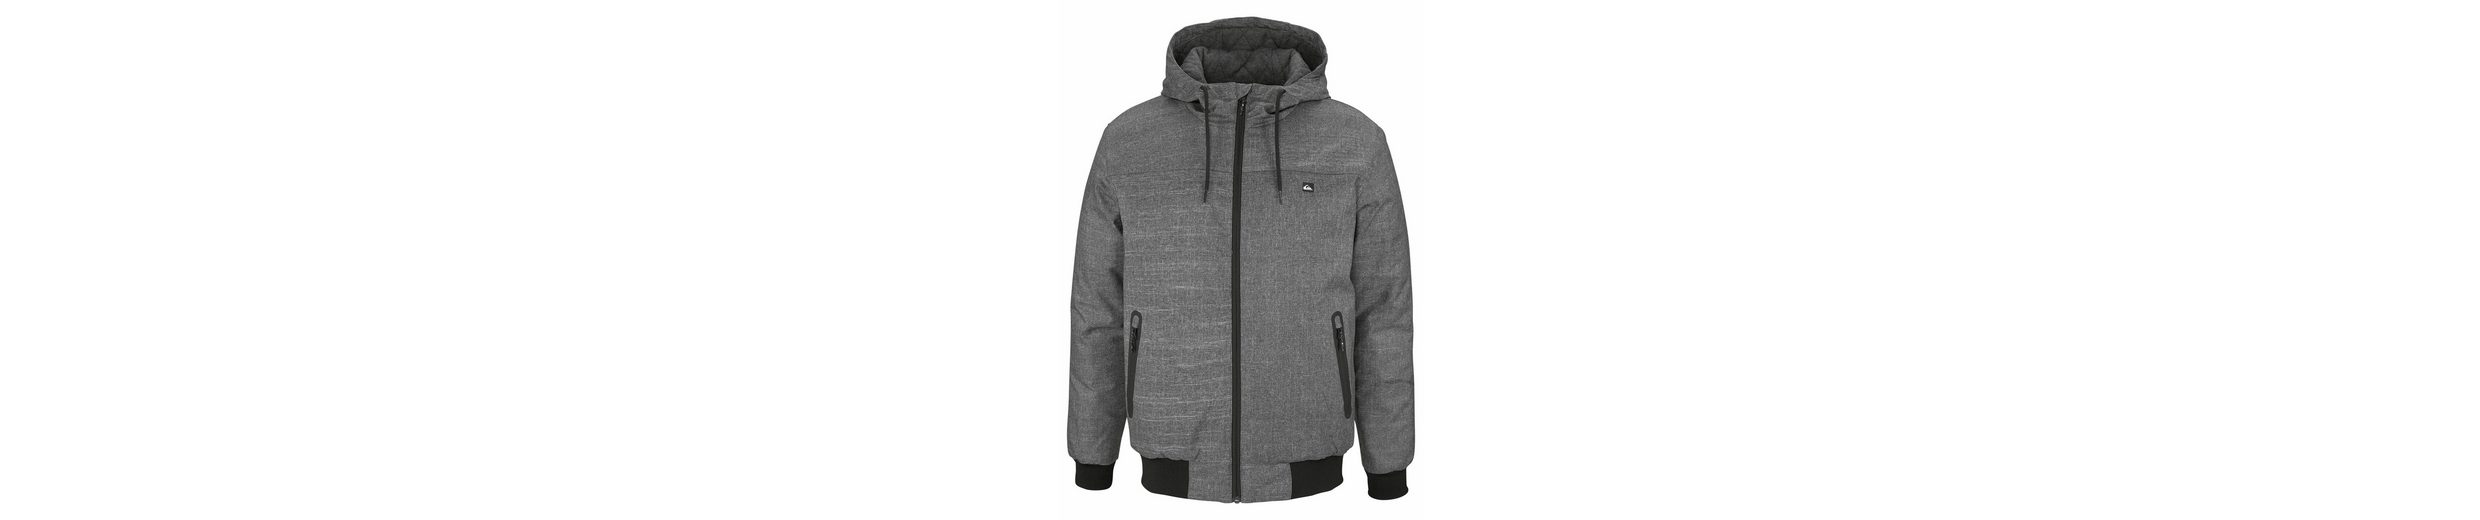 Quiksilver Outdoorjacke Günstig Kaufen Footlocker Finish Aqgzmy5